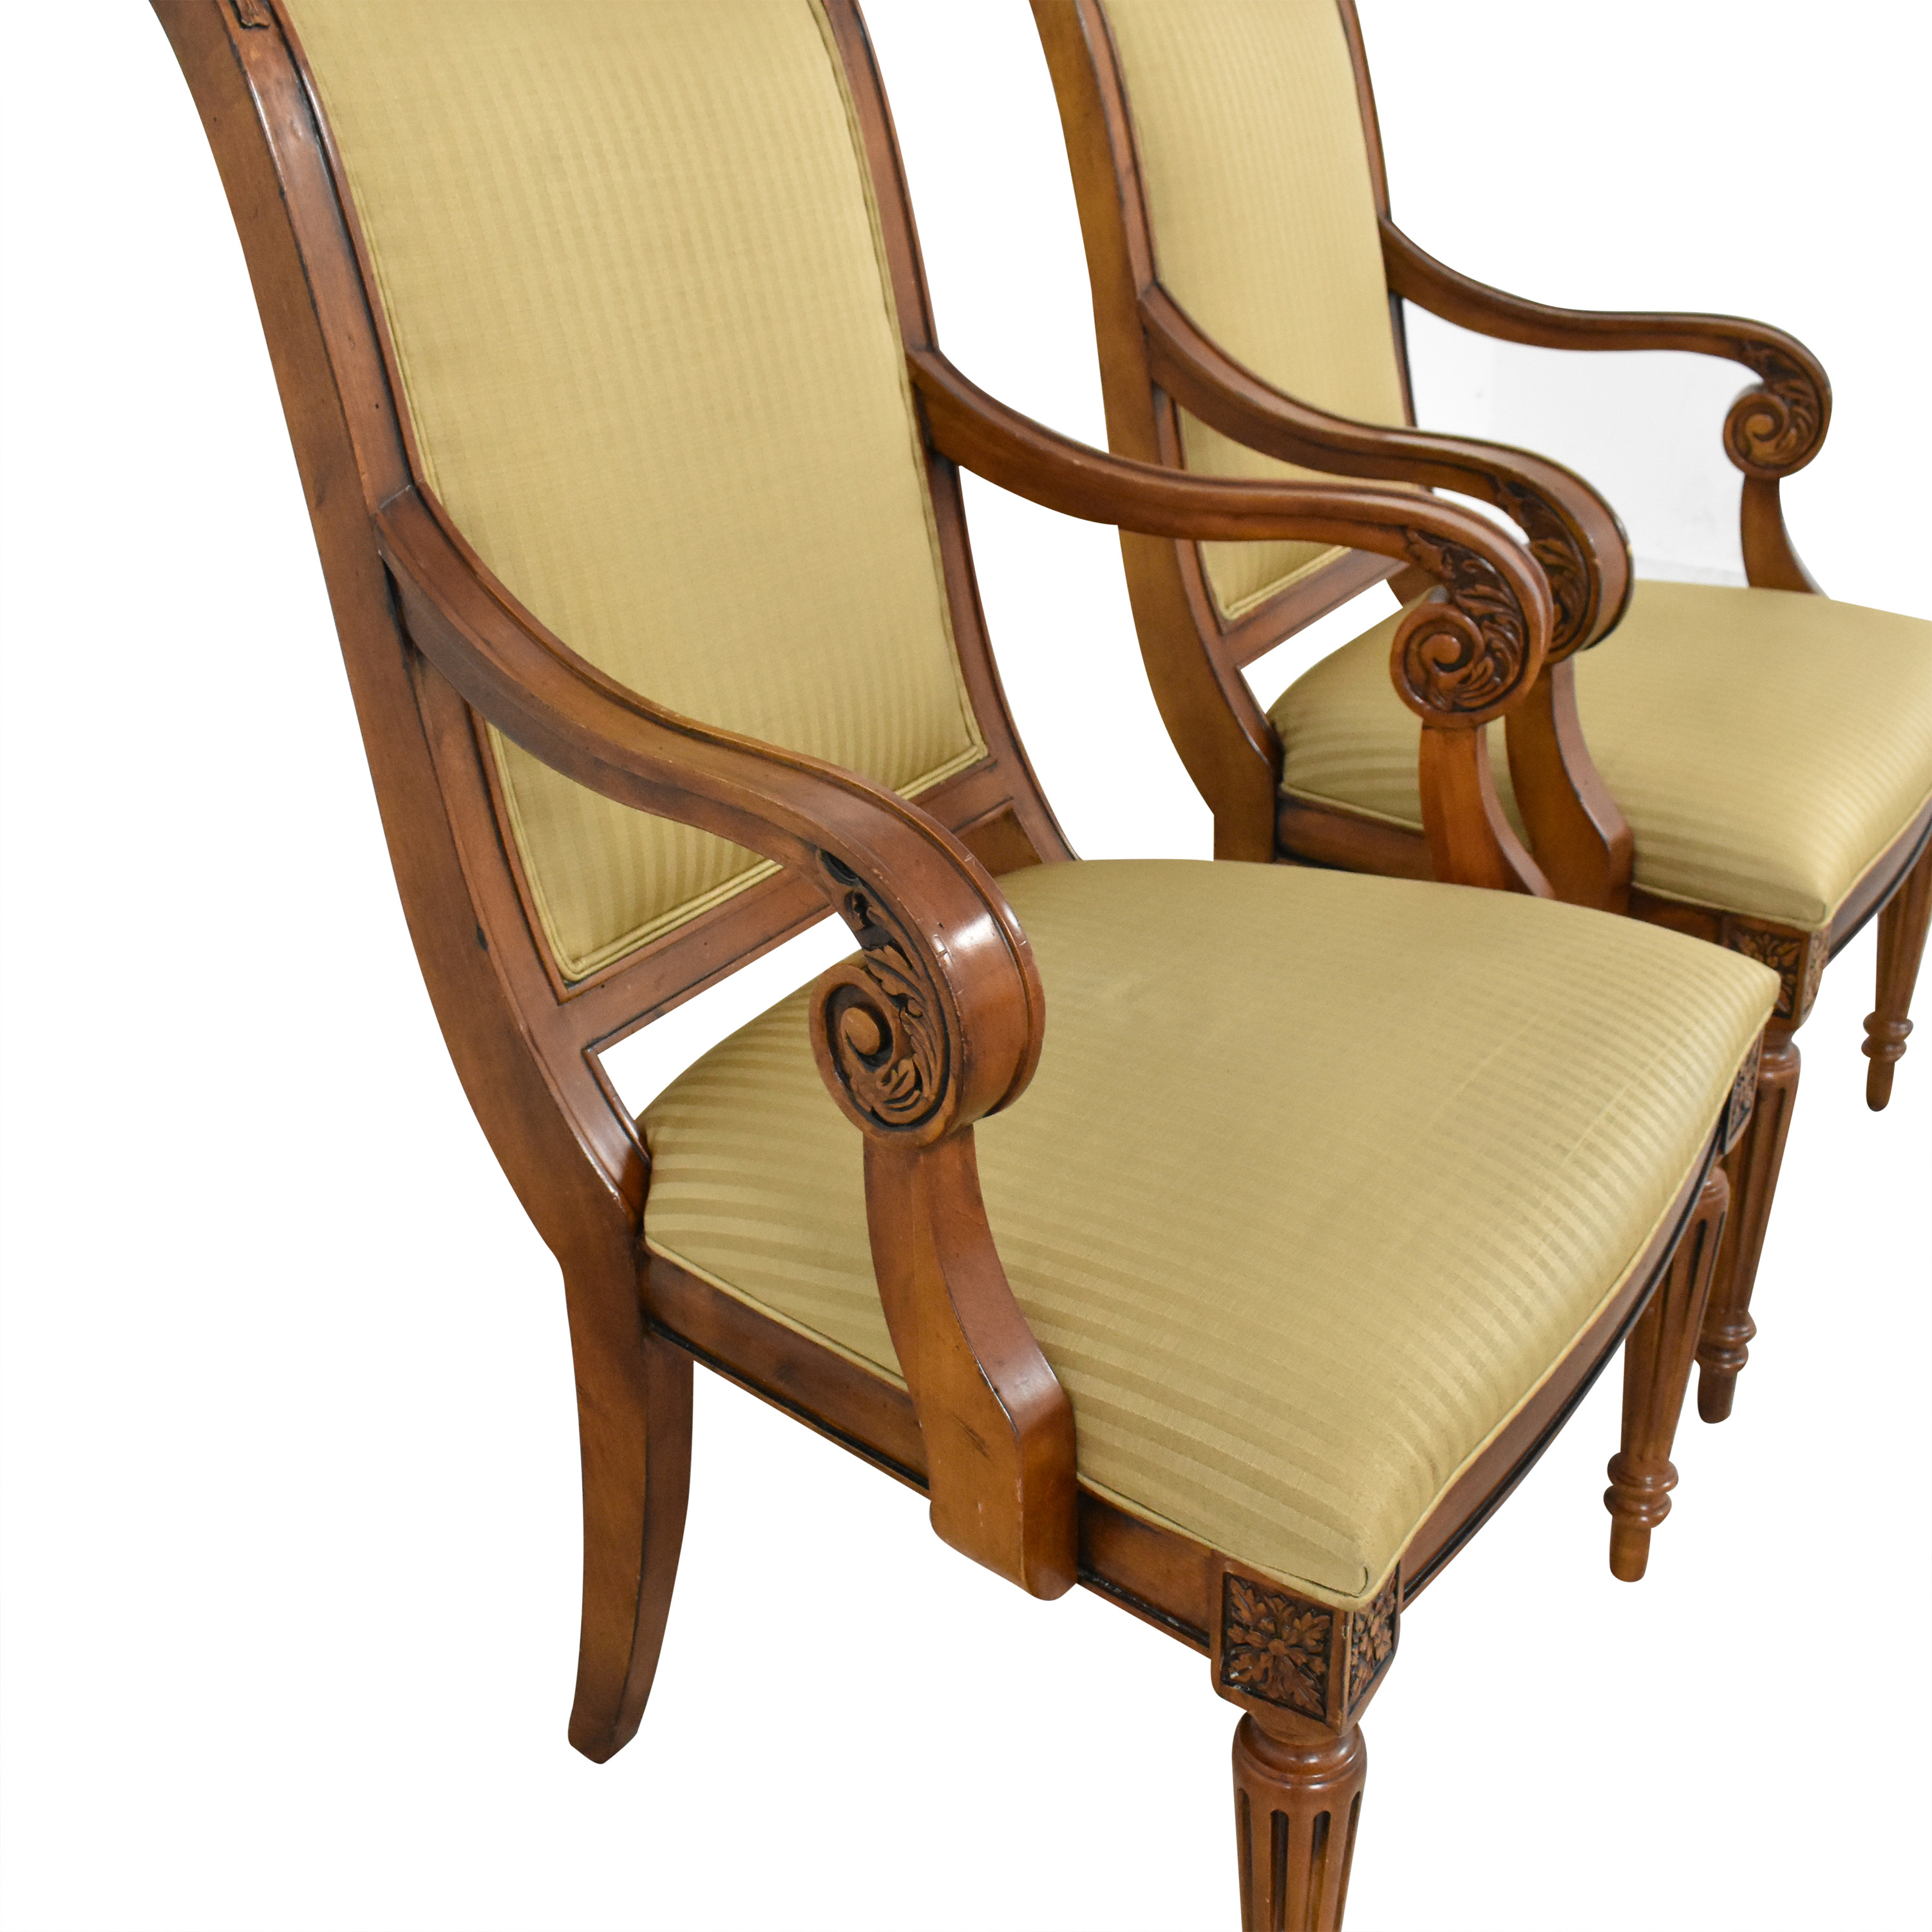 Ethan Allen Ethan Allen Adison Dining Arm Chairs coupon